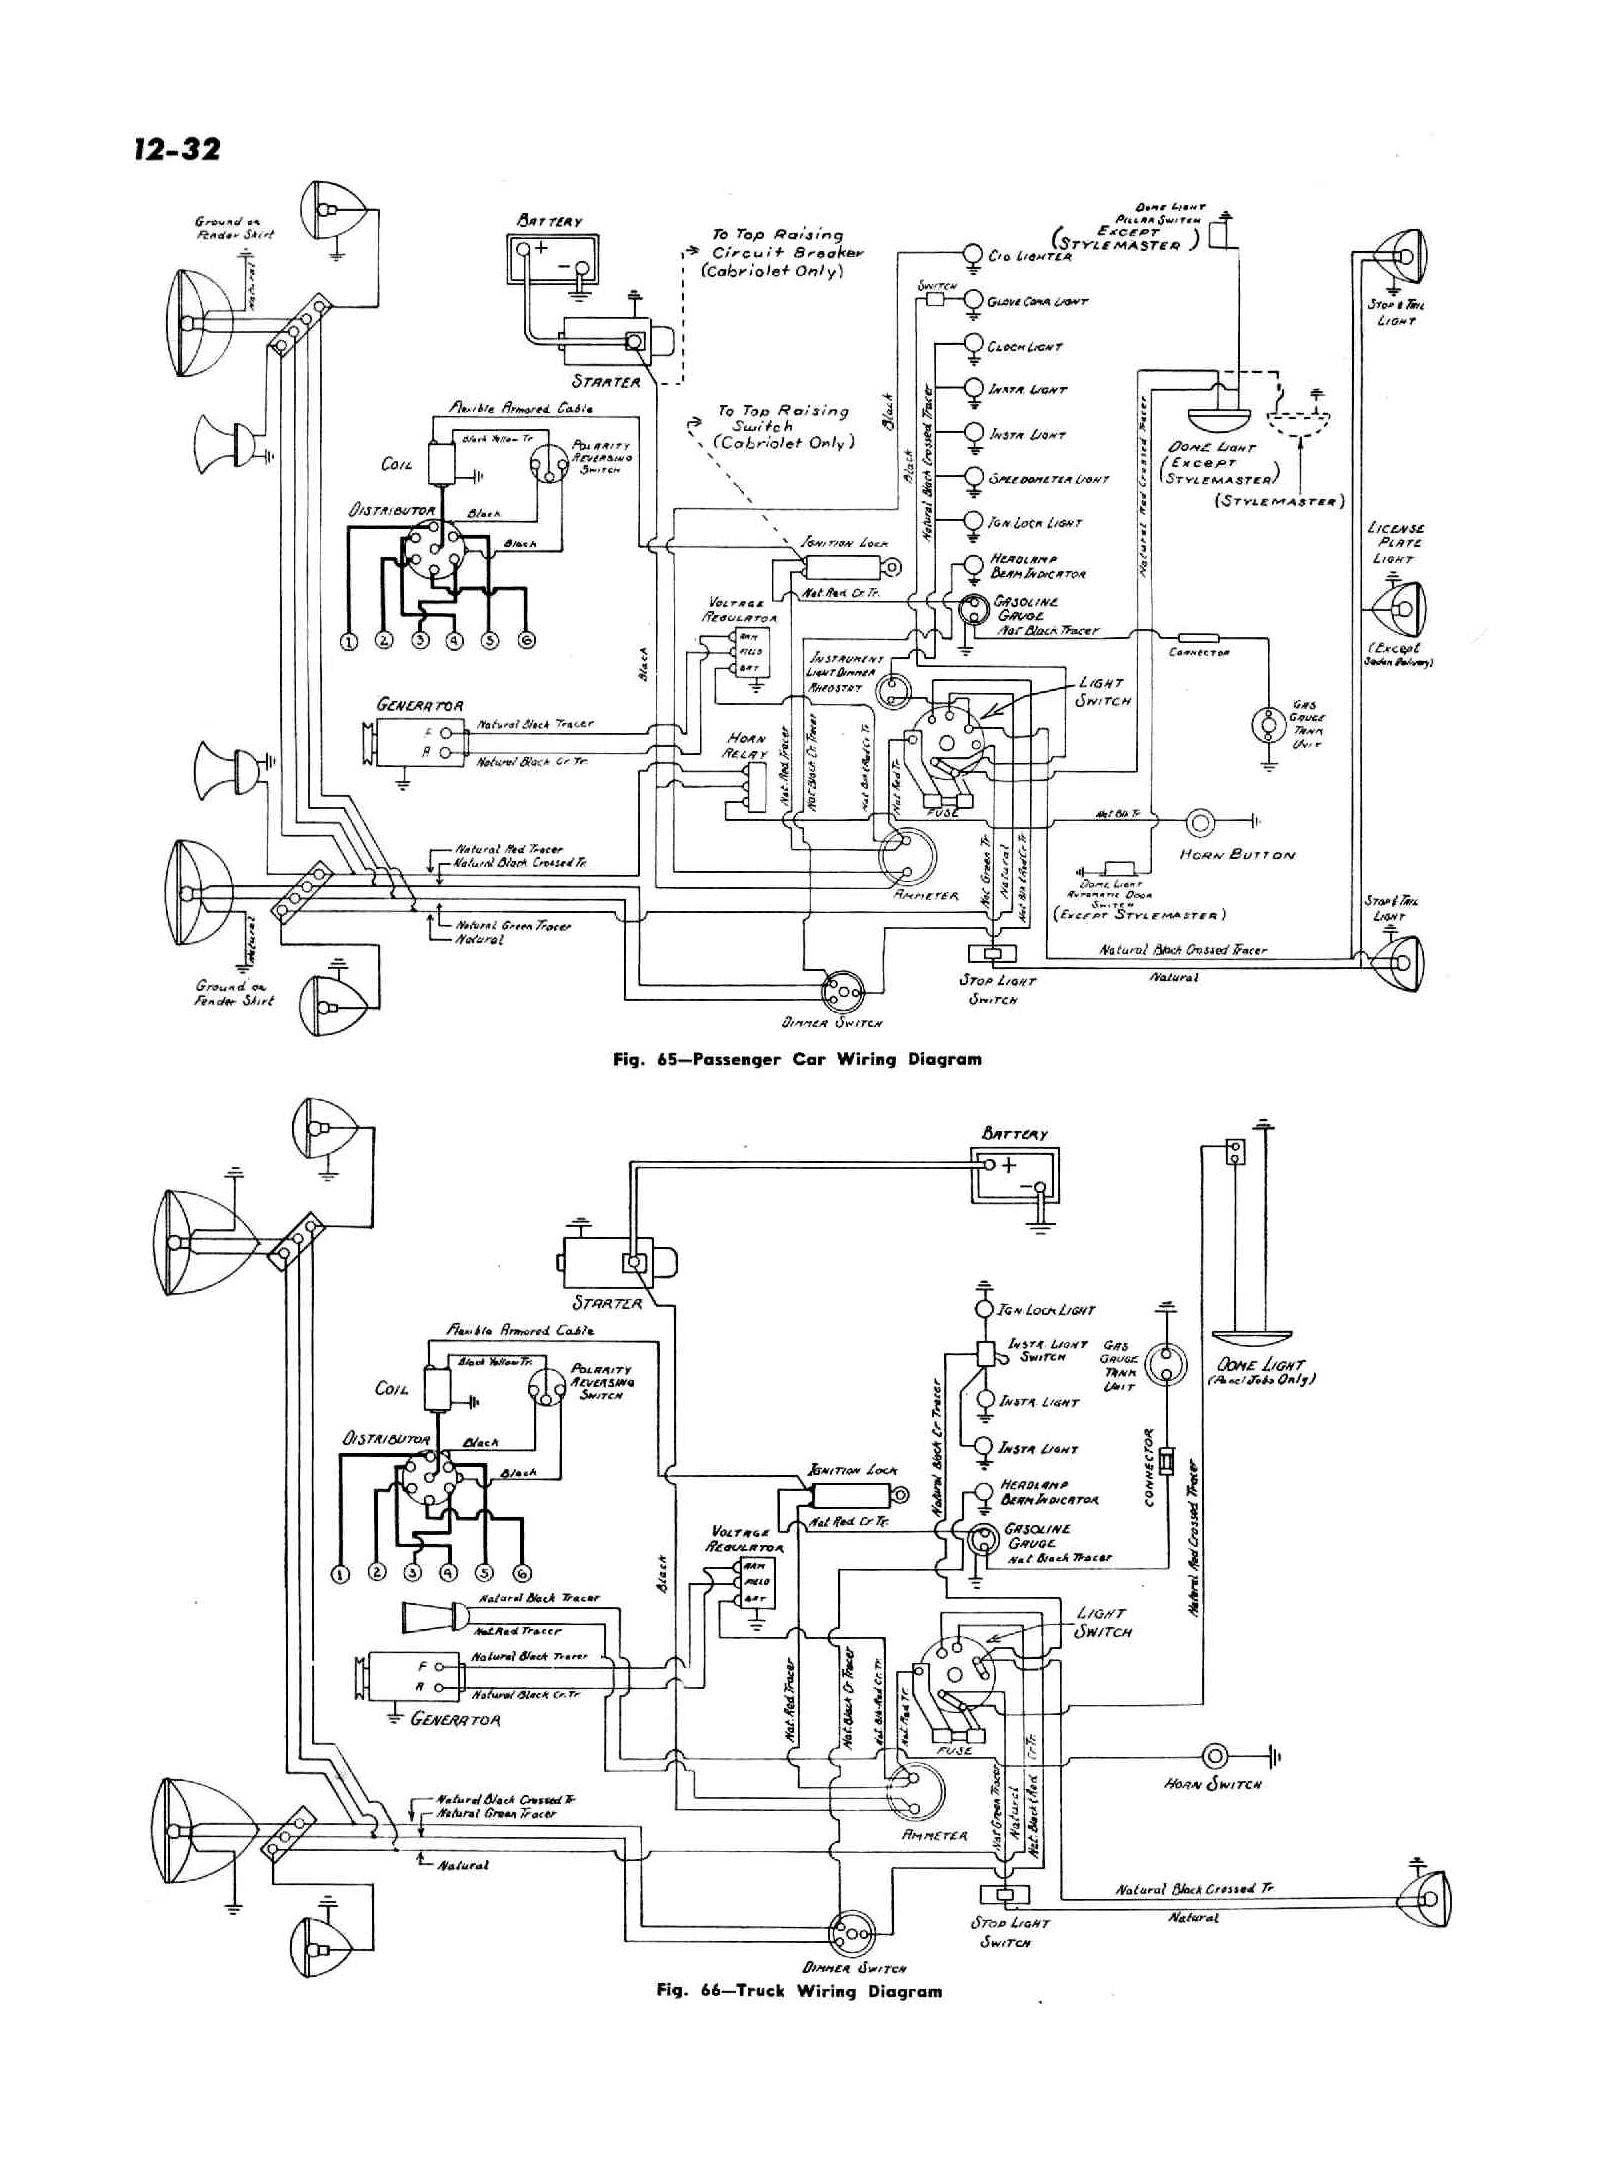 1970 chevy nova wiring diagram